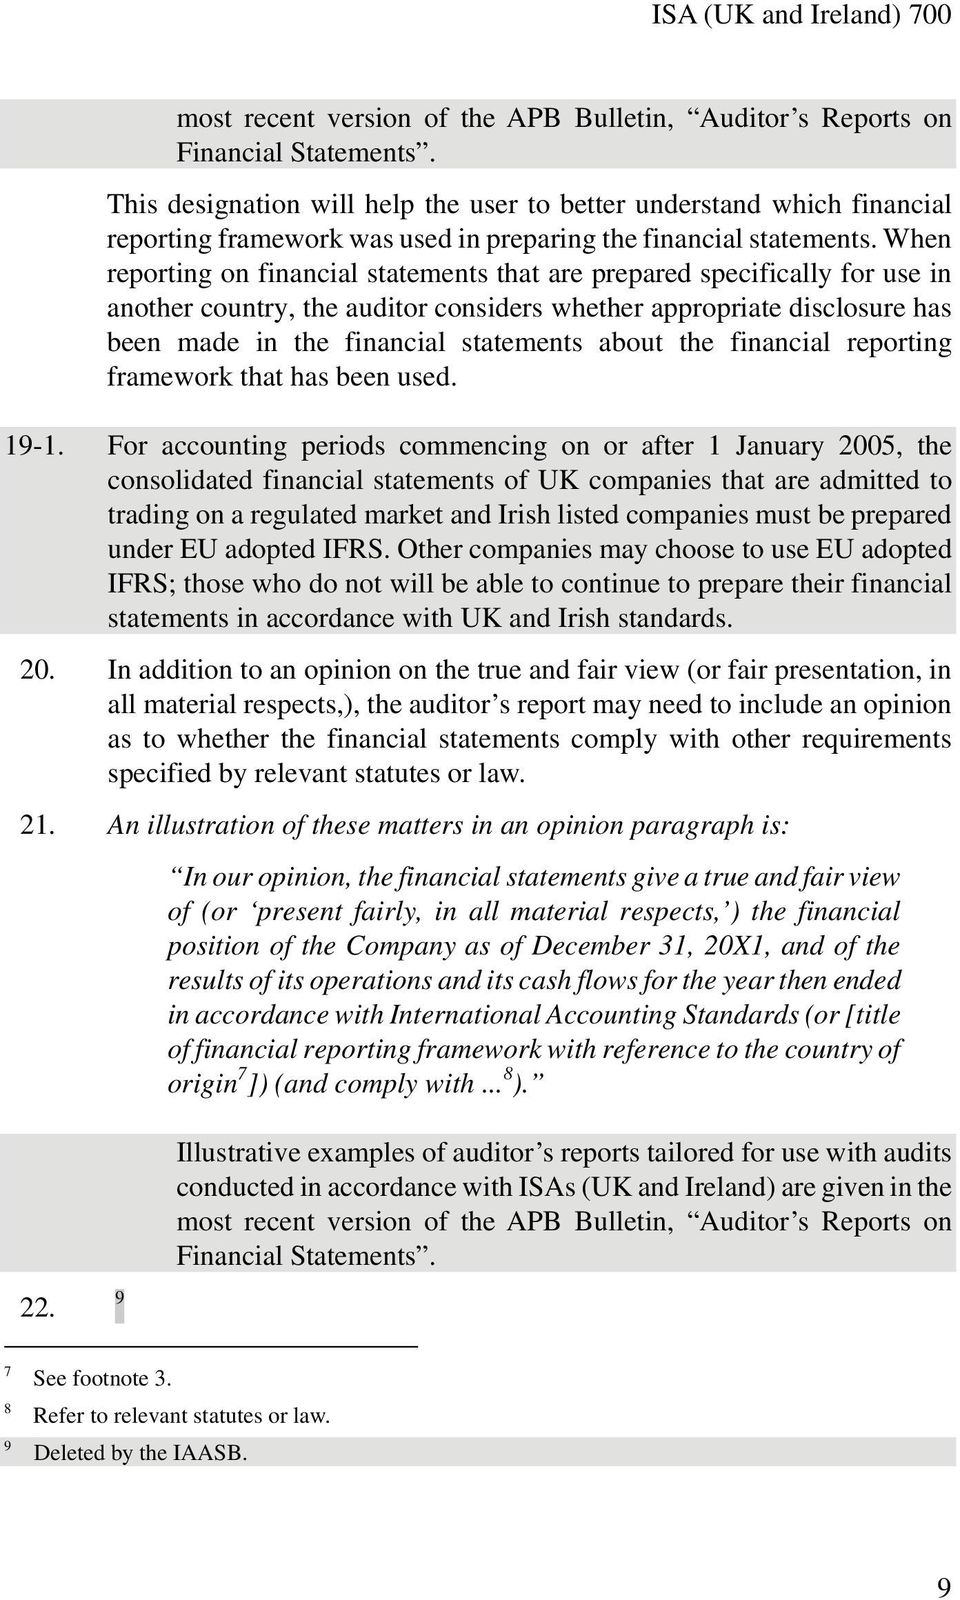 When reporting on financial statements that are prepared specifically for use in another country, the auditor considers whether appropriate disclosure has been made in the financial statements about